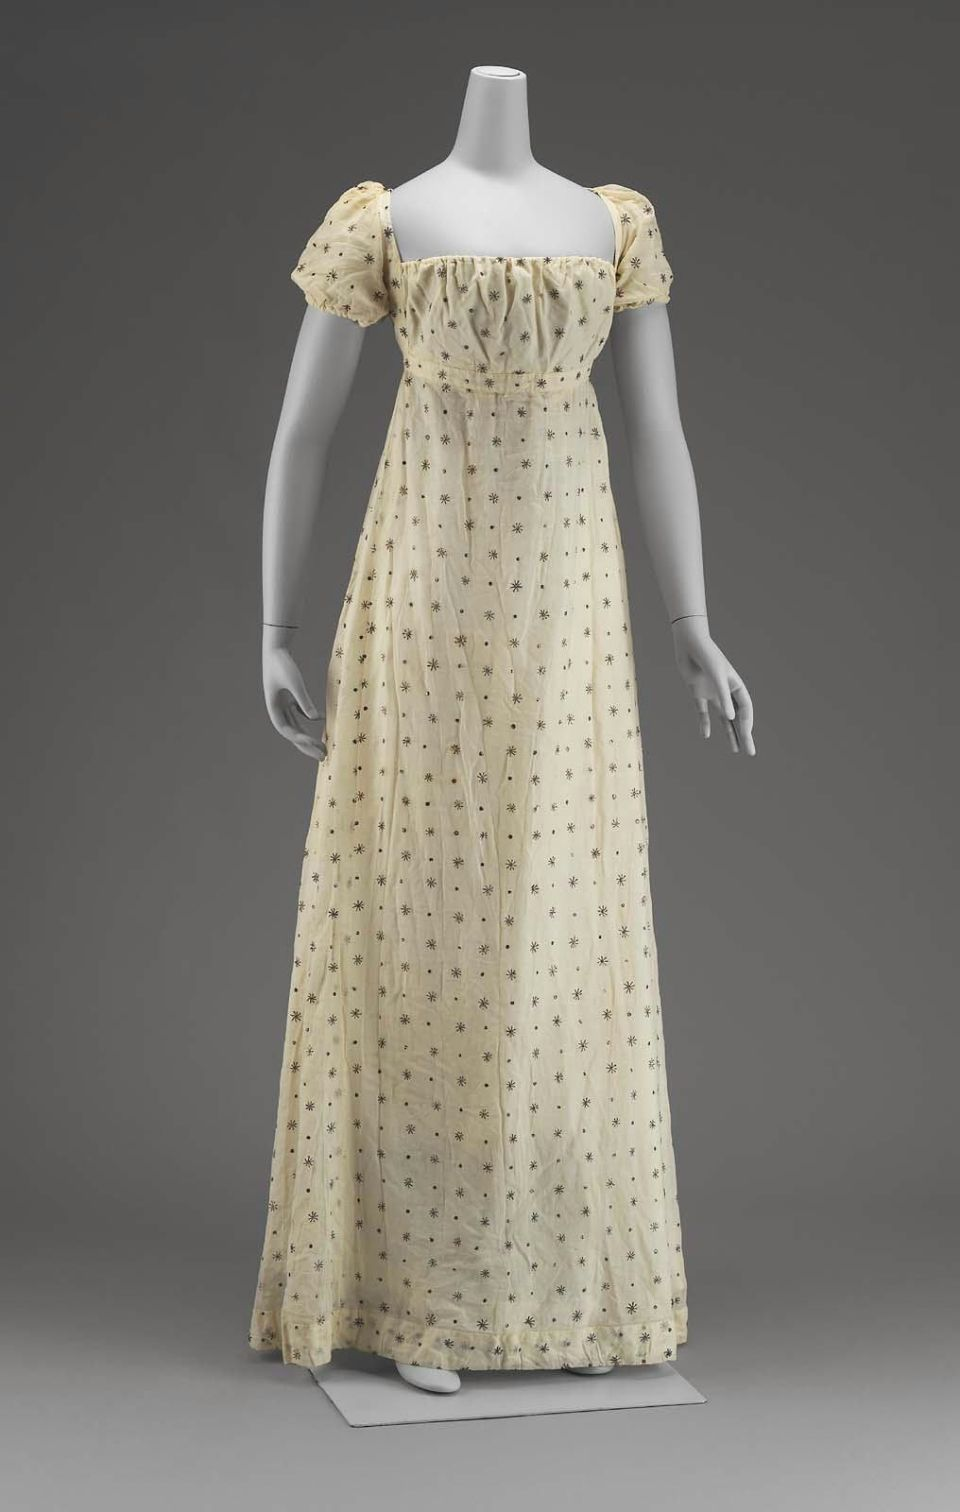 White mull dress american early 19th c mfa boston 53 for 19th century wedding dresses